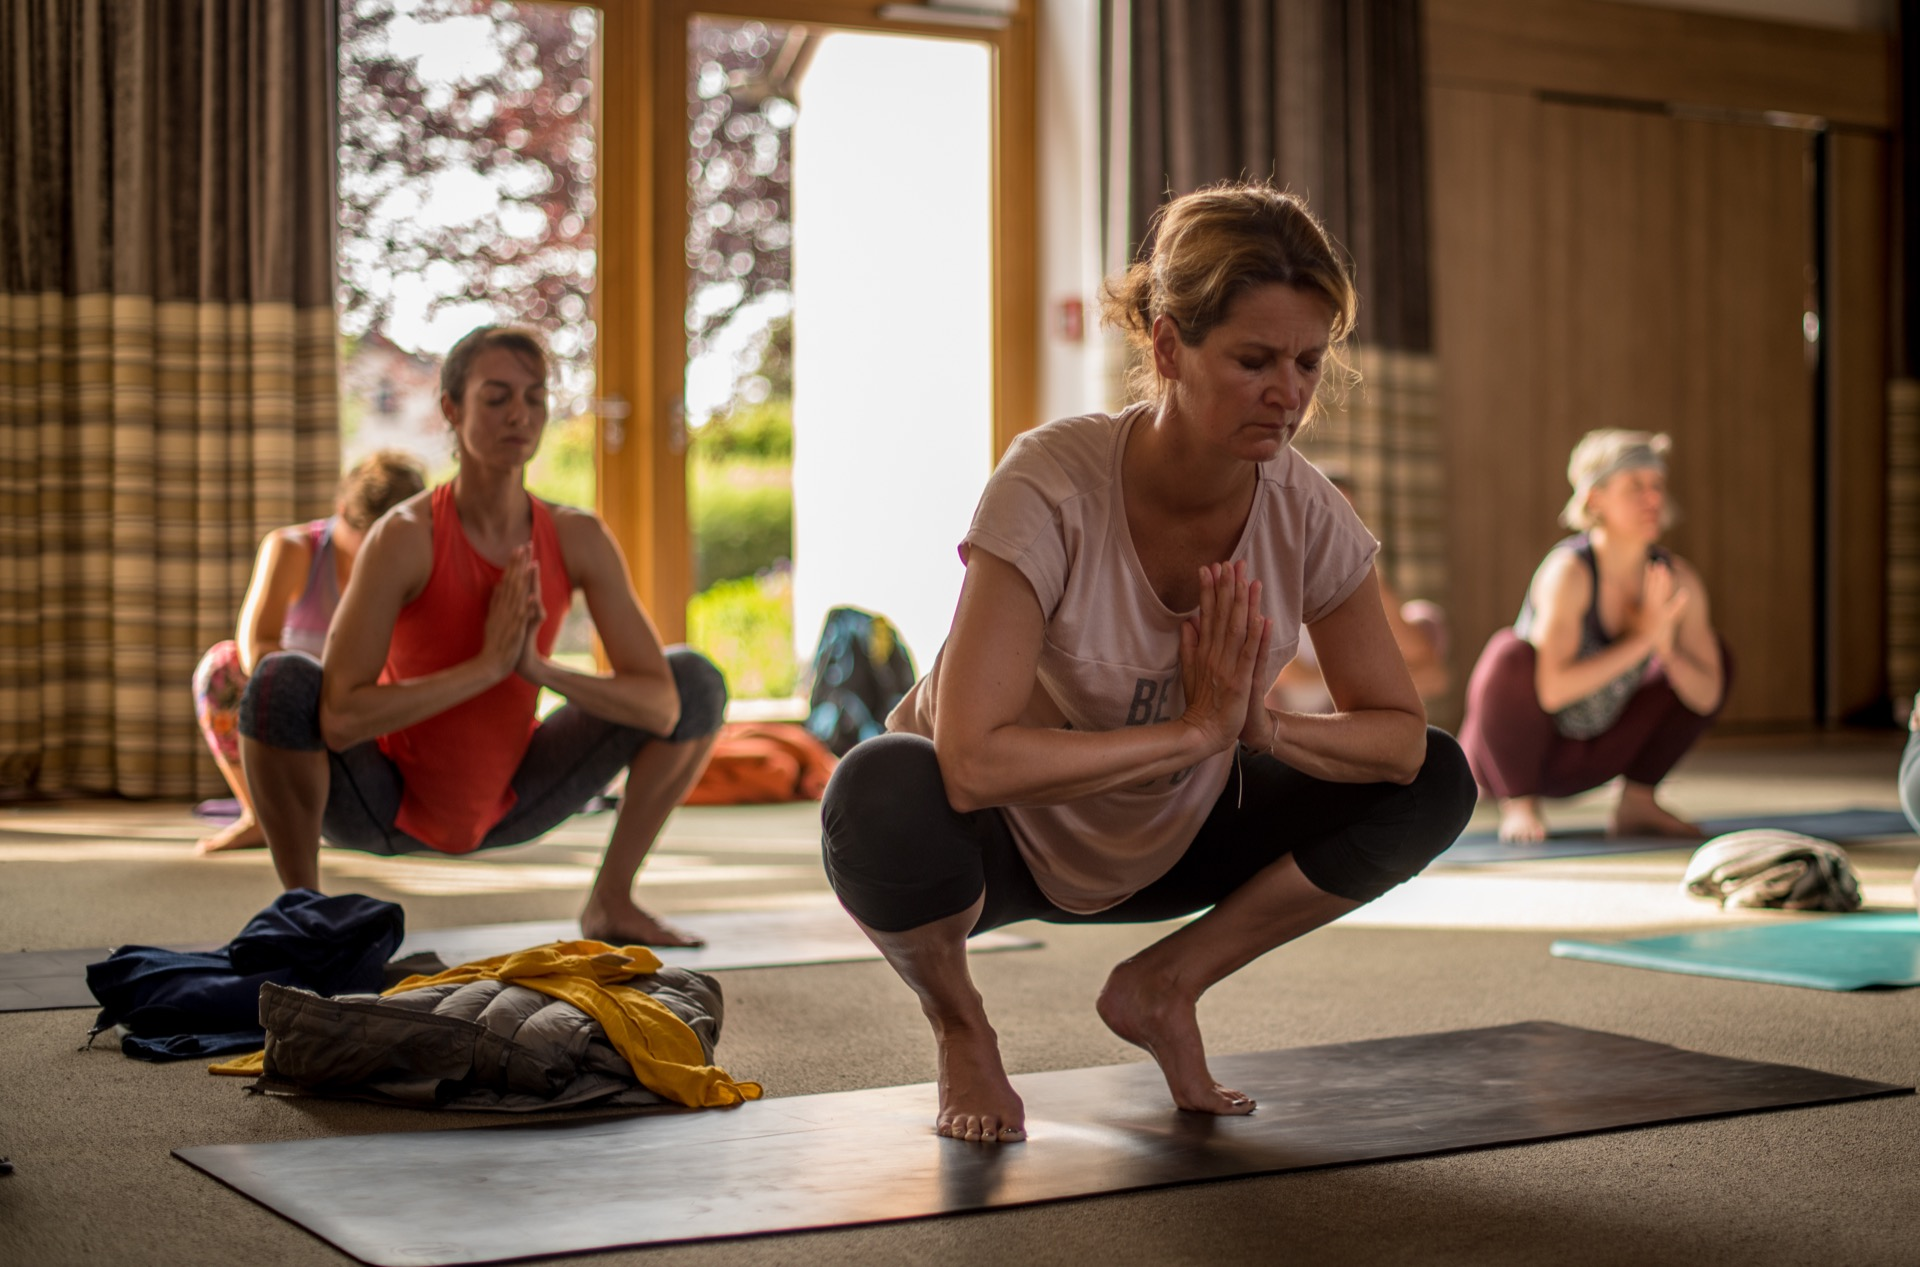 Hie-Kim-Friends-2019-Yoga-Retreat-Alina-Matis-Photography-088 - Hie Kim Yoga - Yoga Retreat - Yoga Workshops und Reisen